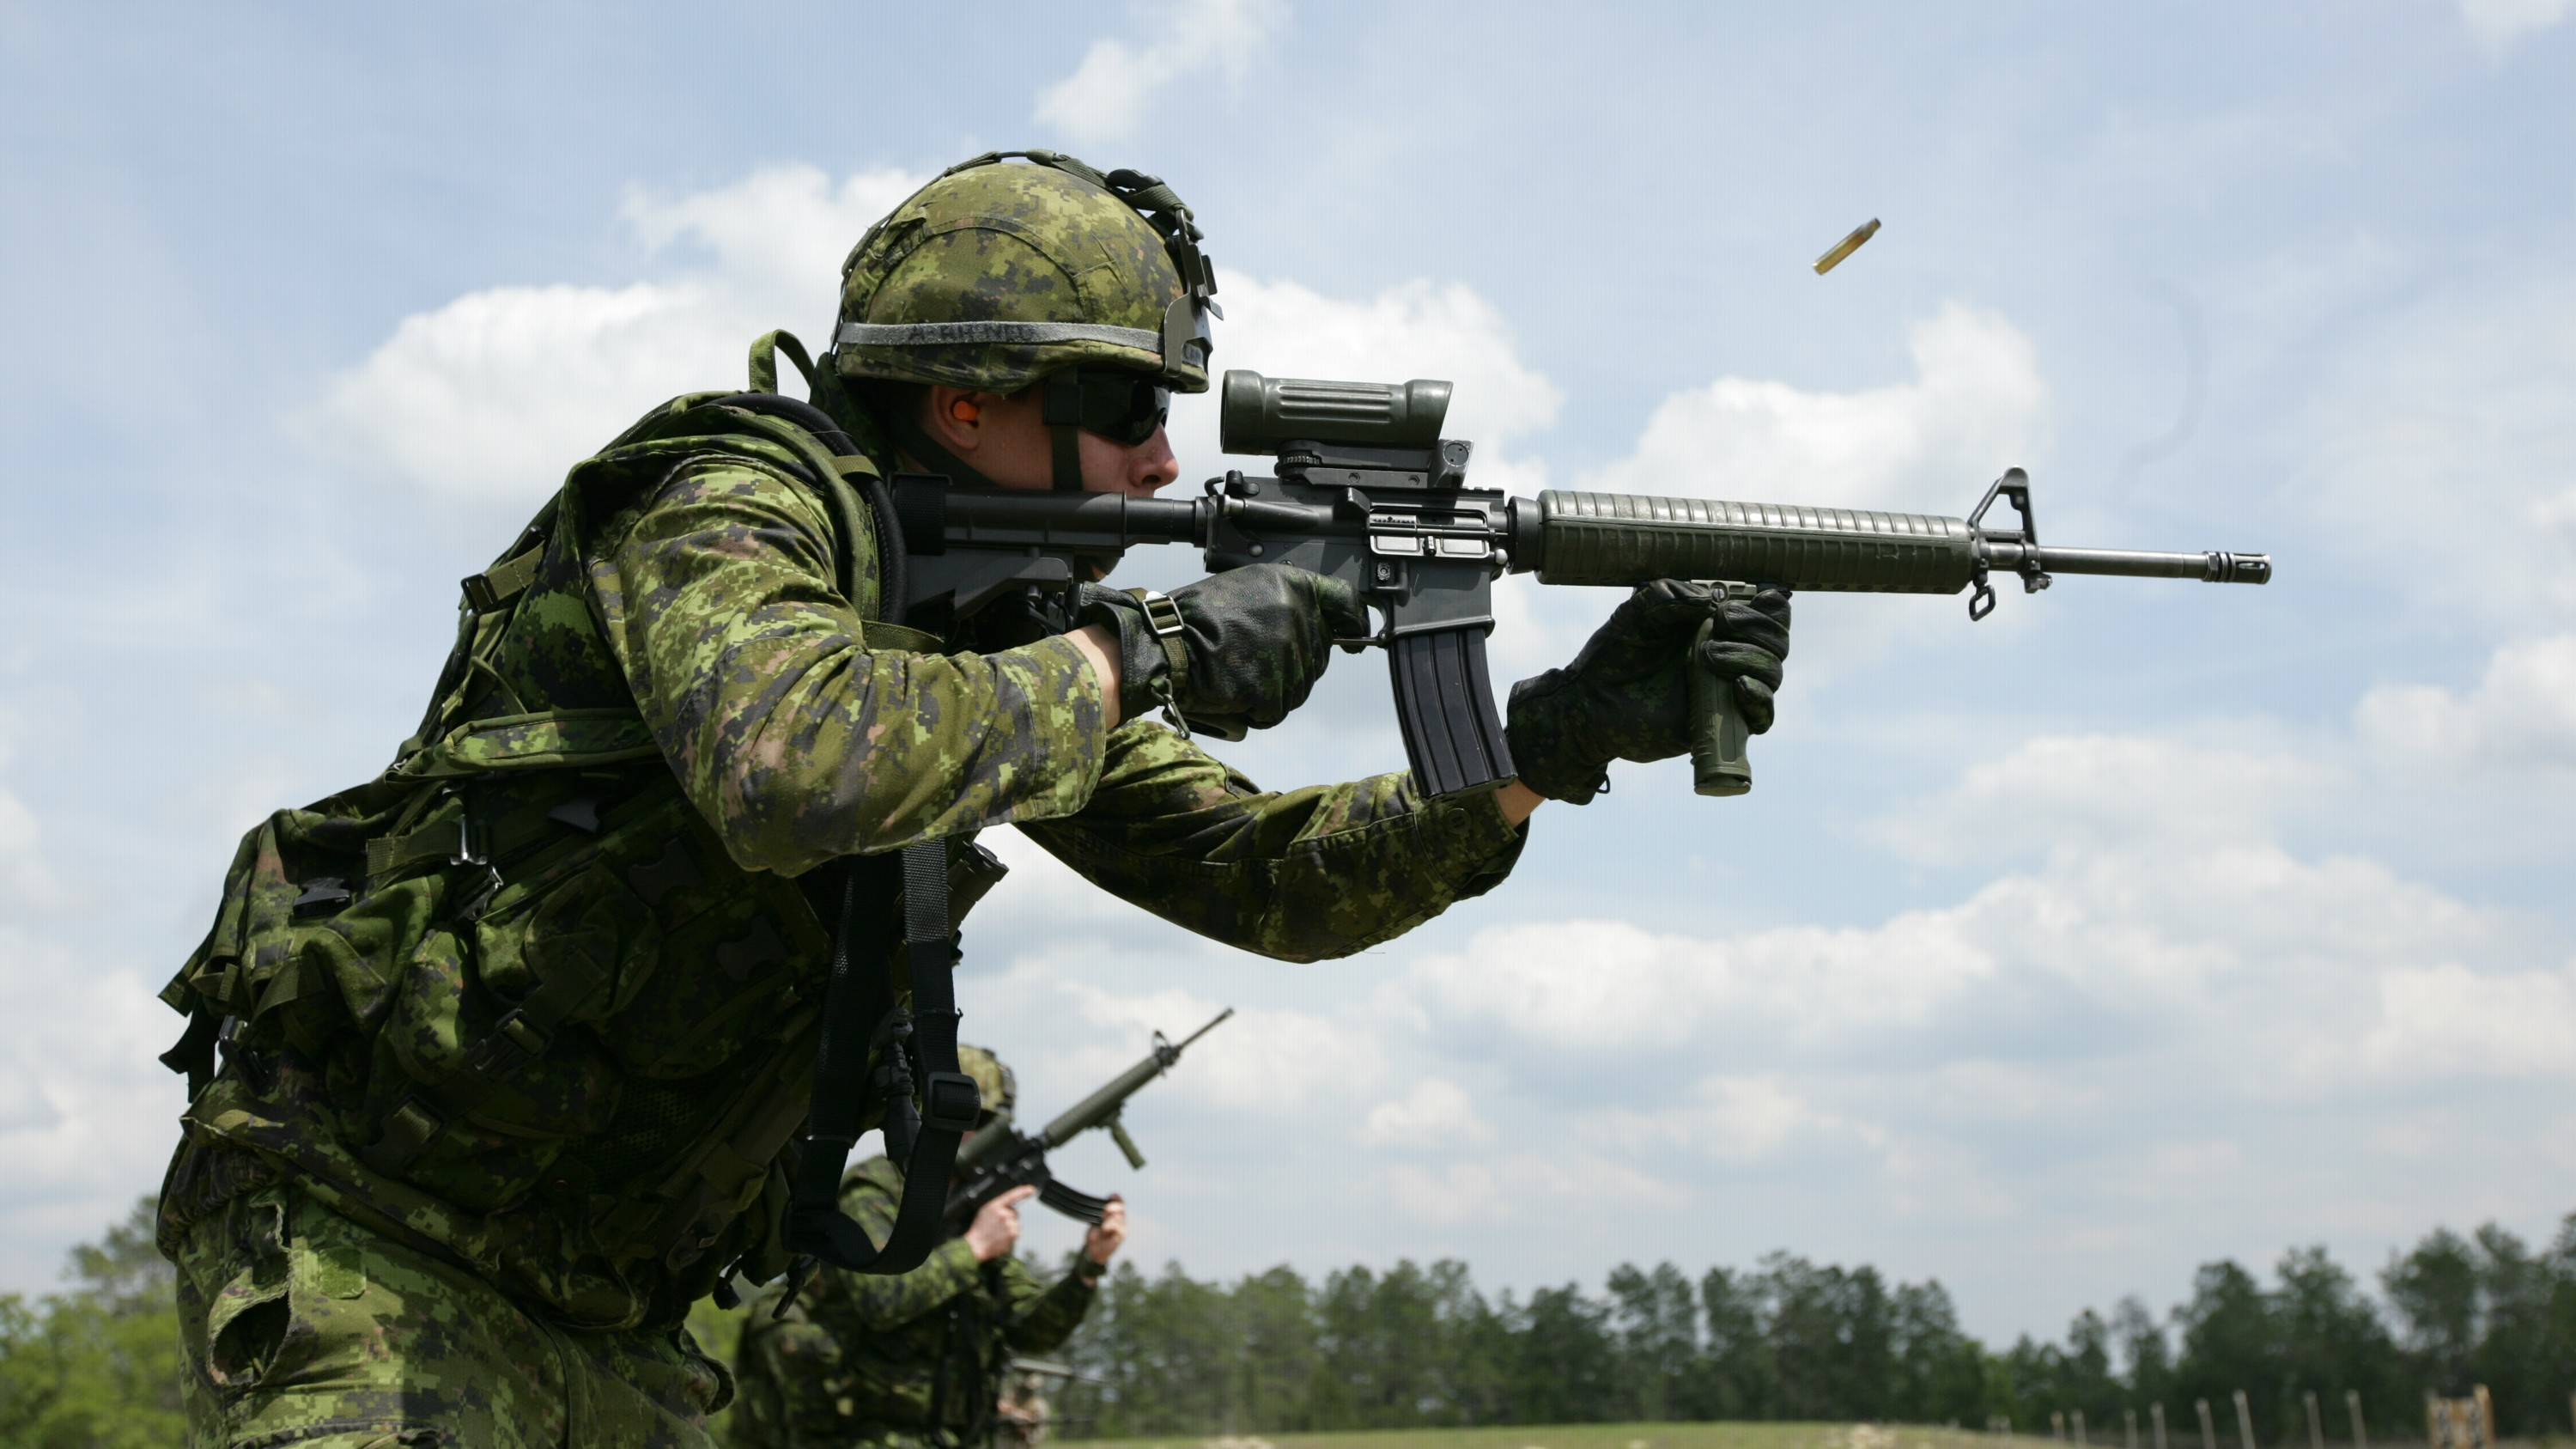 The Canadian Army Will Train to Kill in an Environmentally Friendly Gun Range